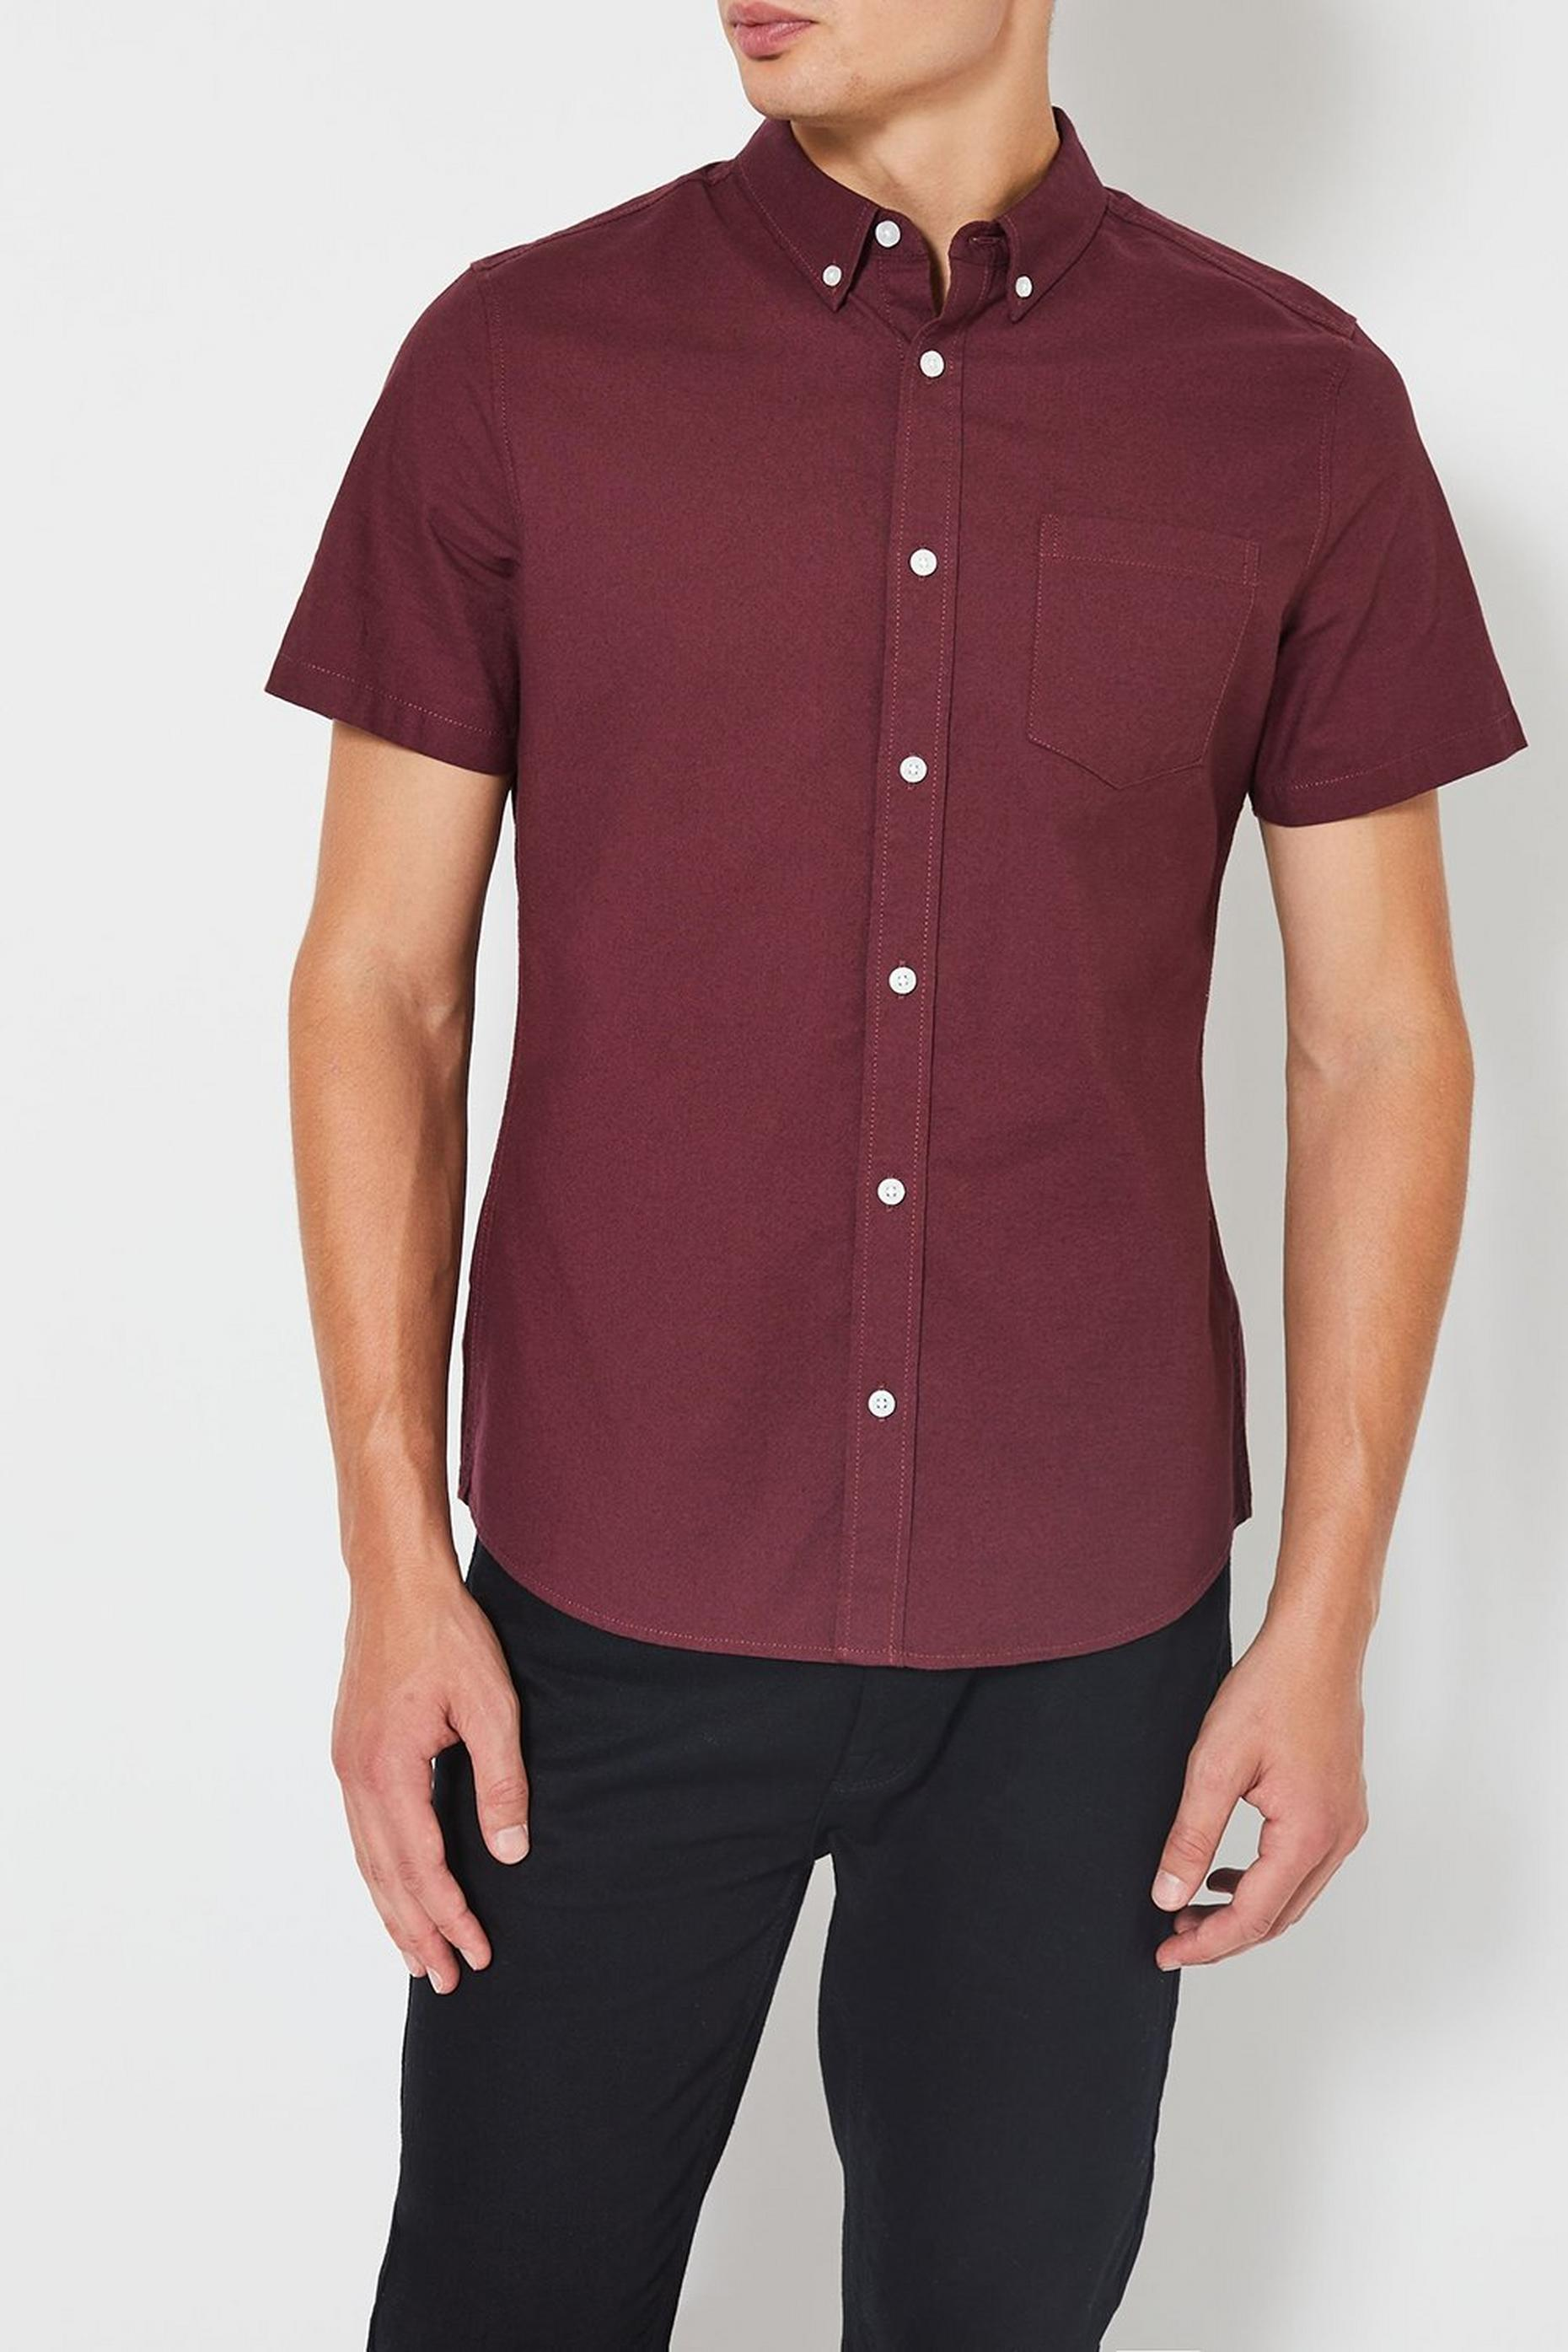 Berry Short Sleeve Oxford Shirt